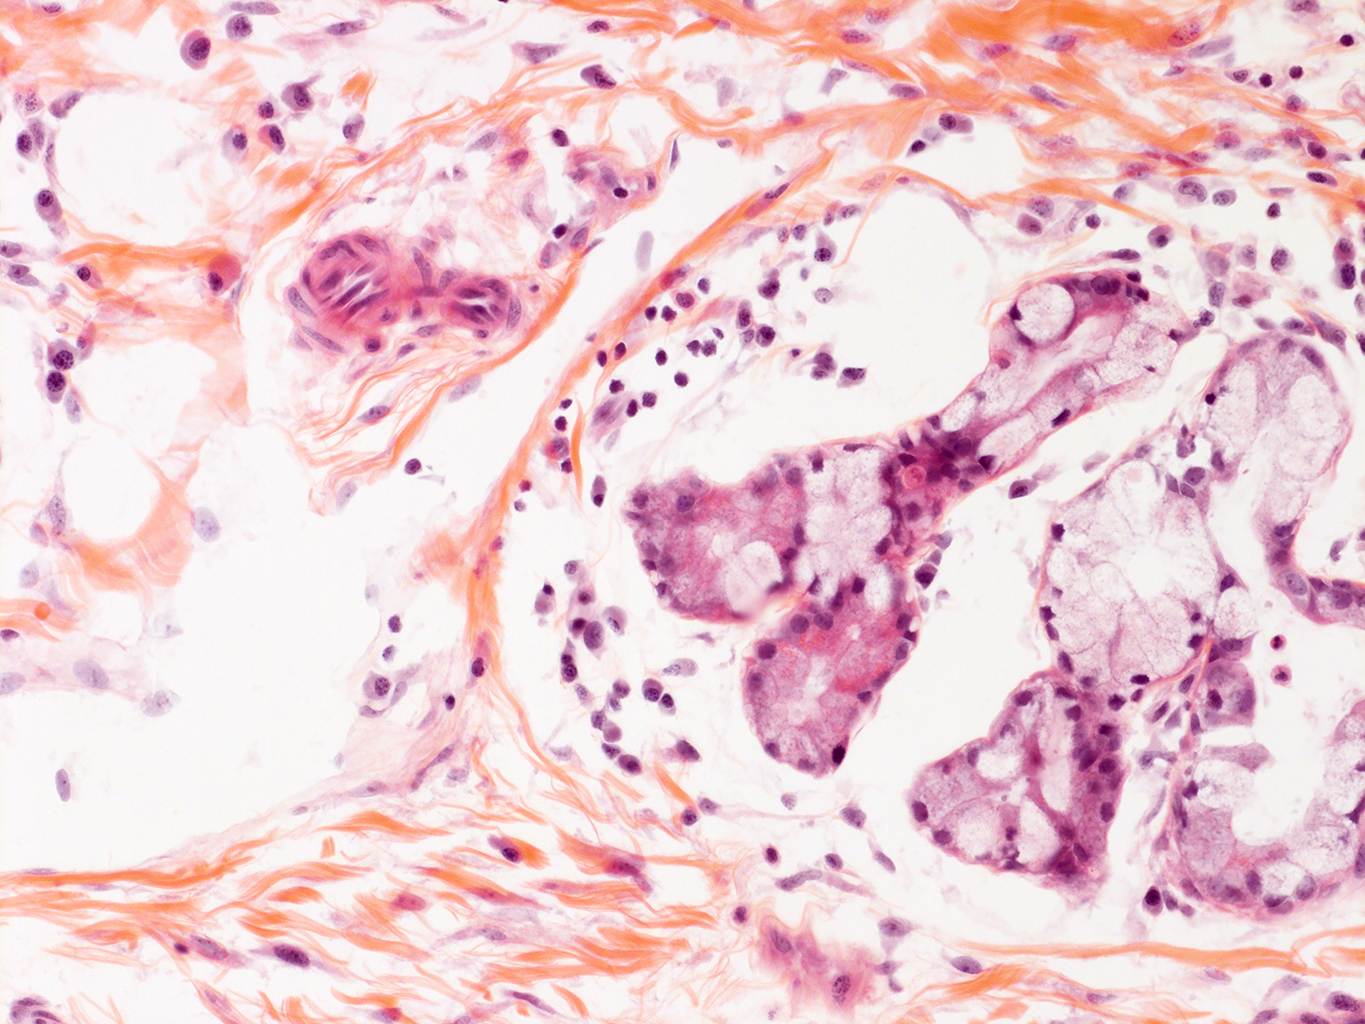 H&E Staining of 11 Month-Old Human Lung from Donor D094-LLL-5B2